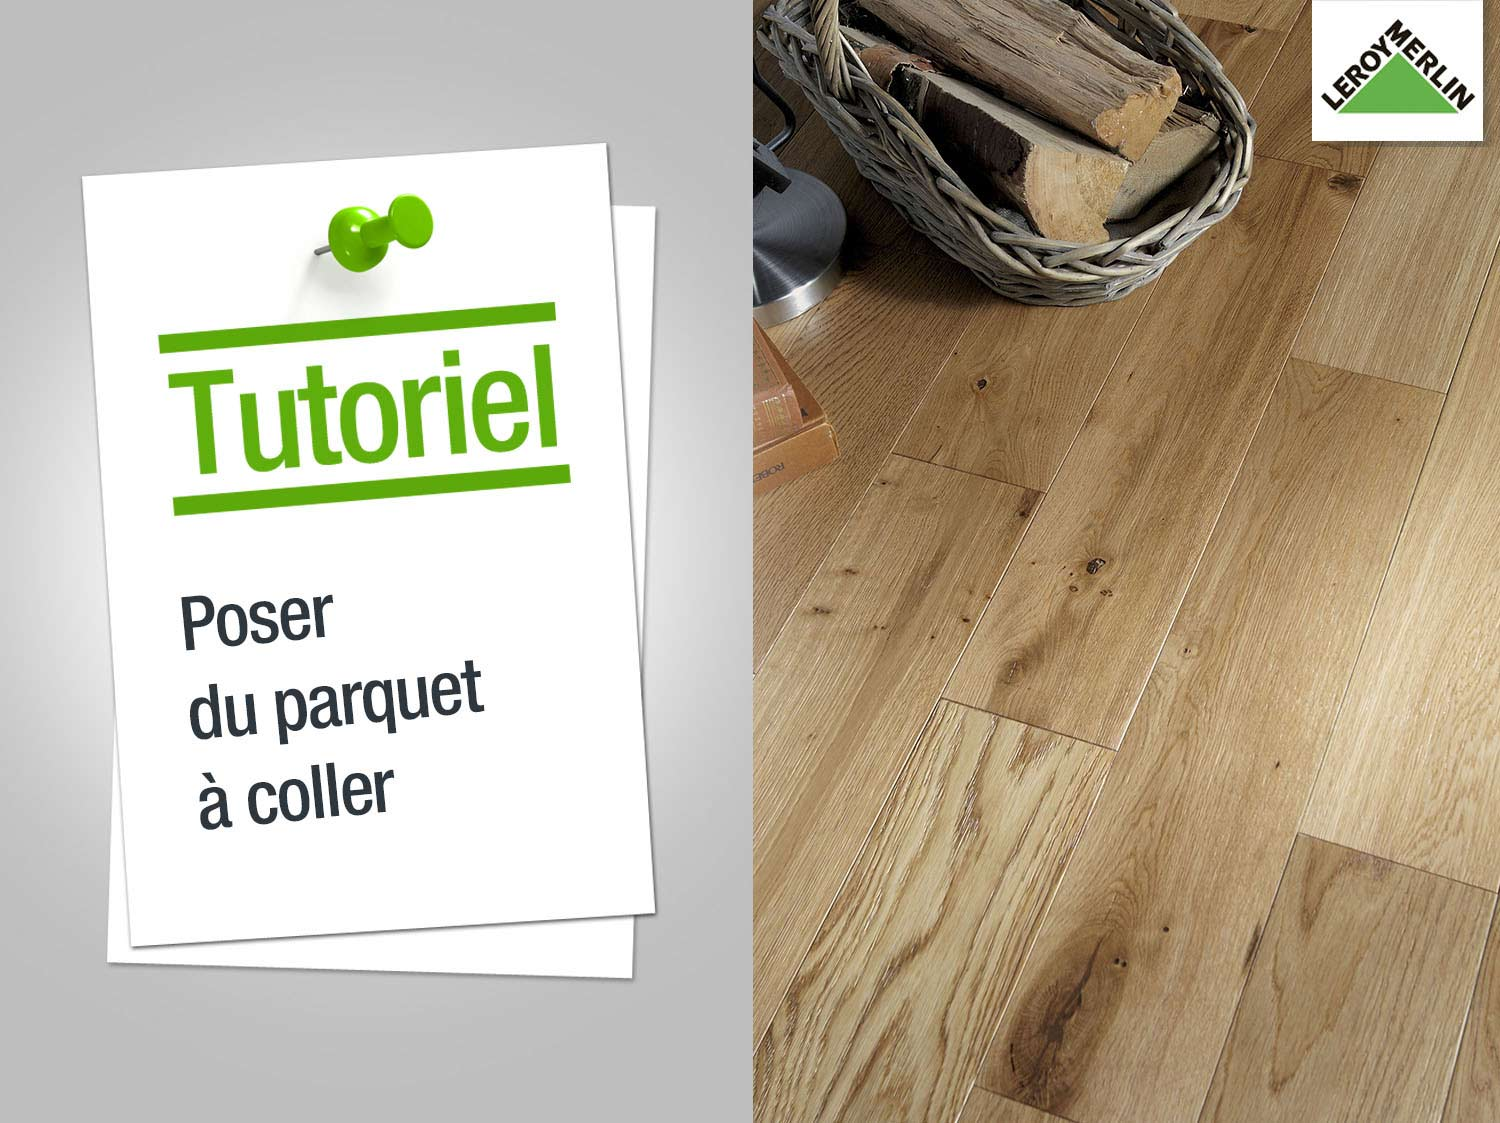 Parquet massif chataignier leroy merlin parquet massif for Coller du parquet massif sur du carrelage